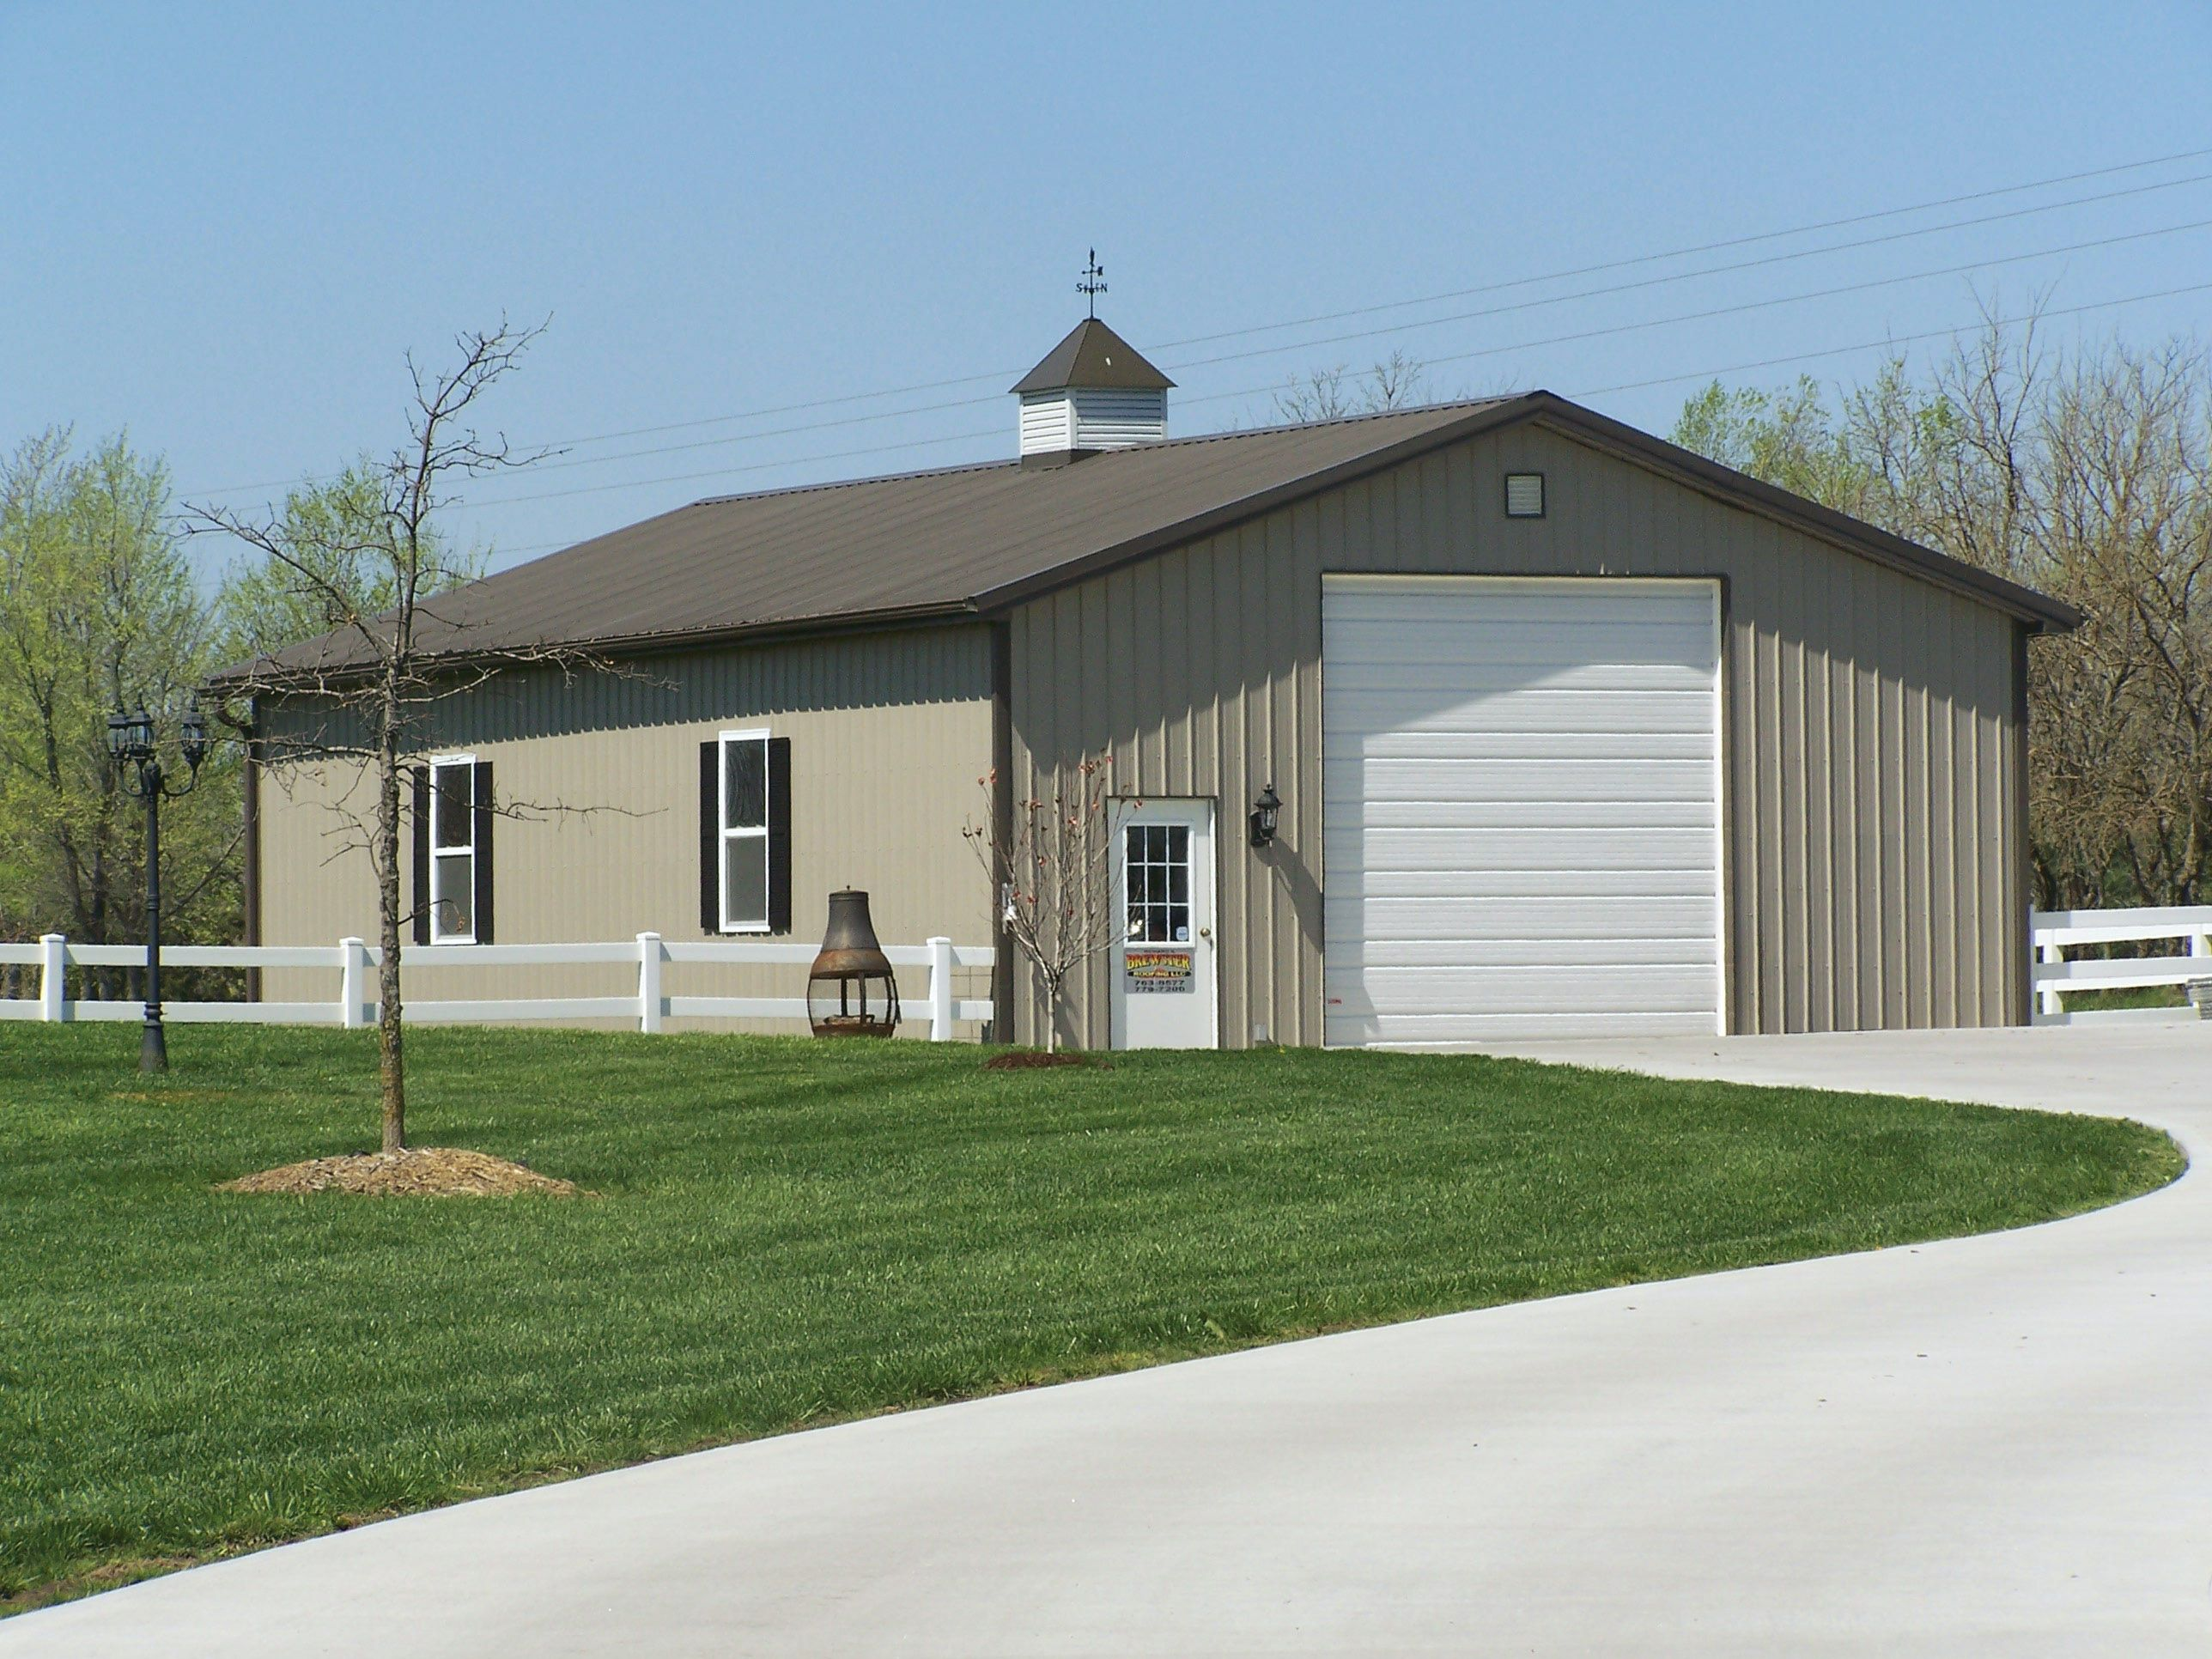 steel sheds design residential steel buildings and residential metal buildings - Metal Building Design Ideas